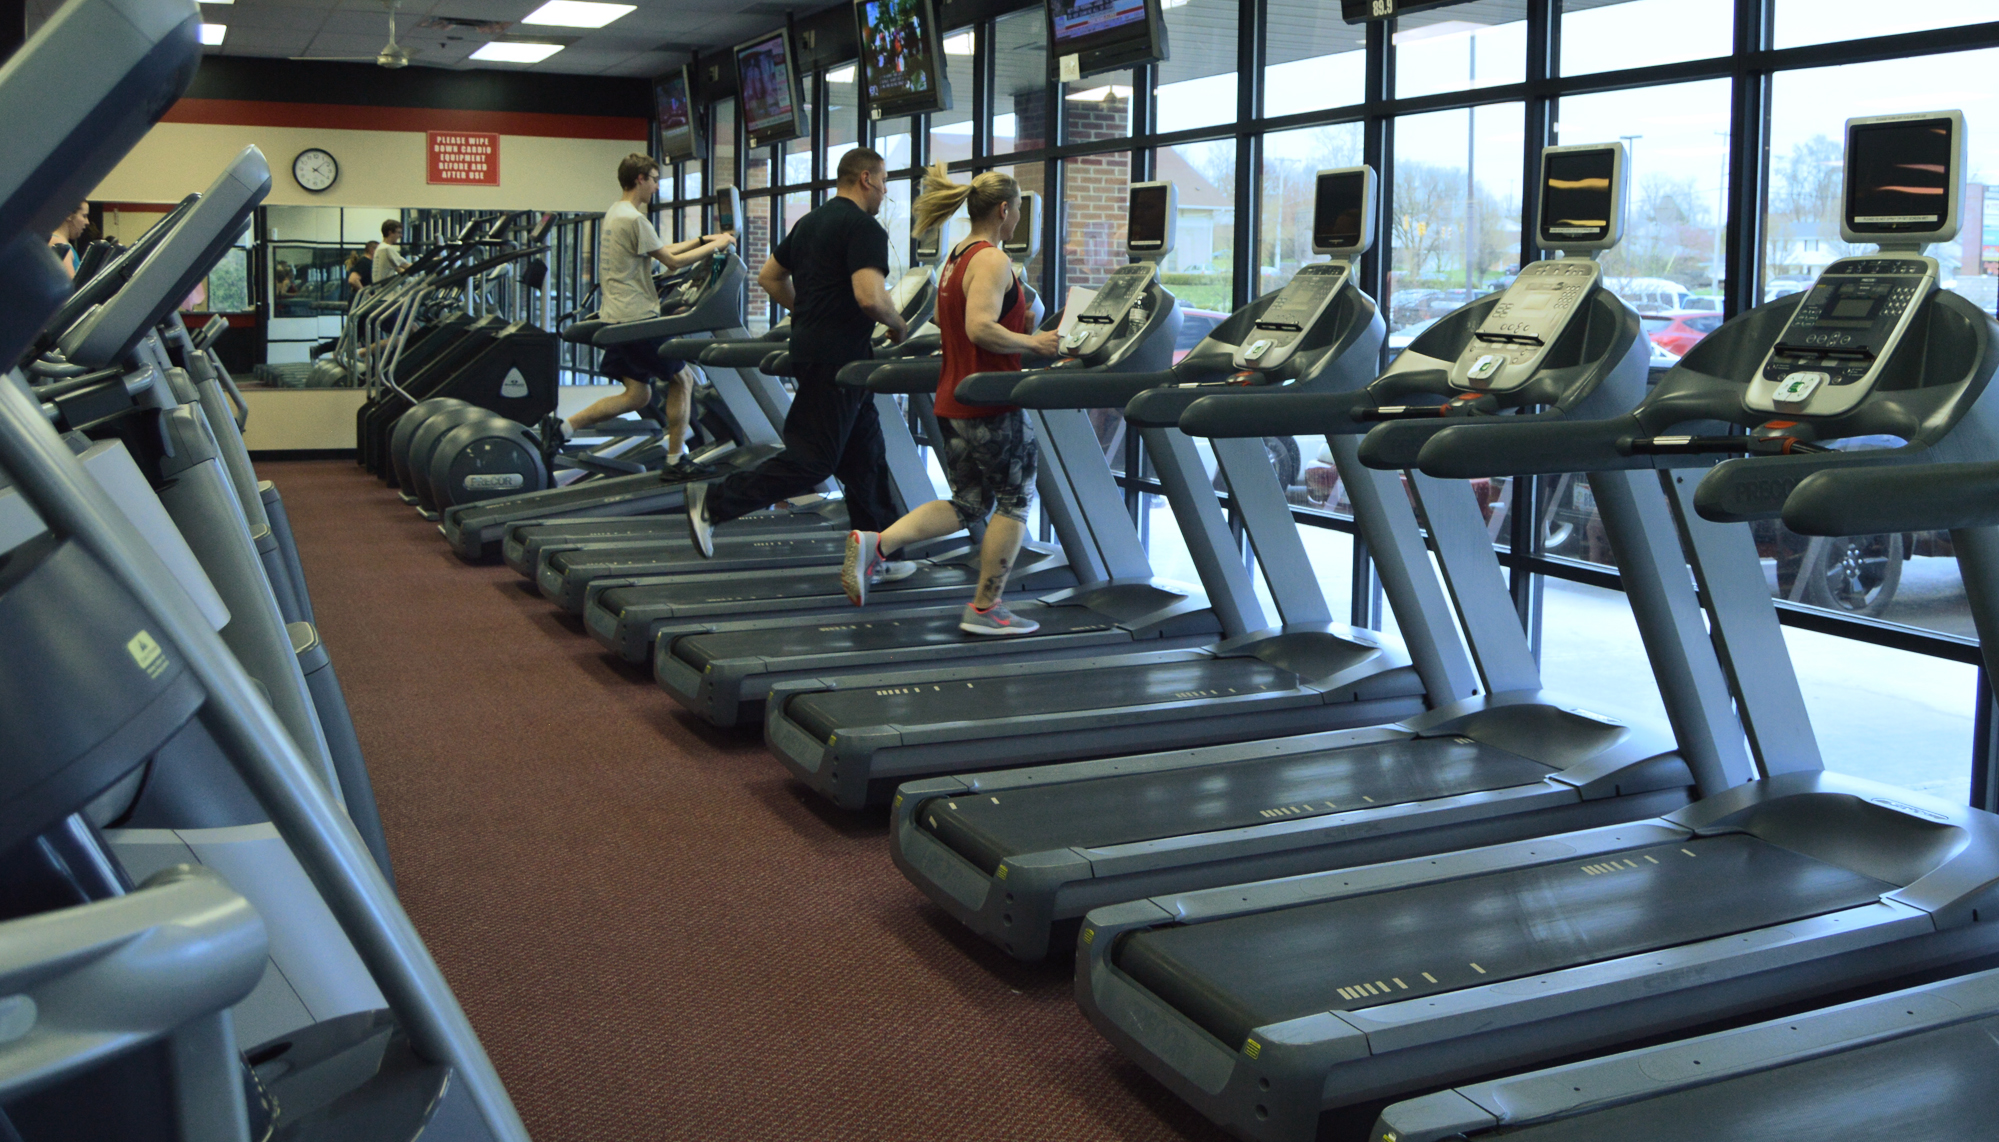 Everybody Fitness Troy Gym Free 7 Day Pass 937 980 9003